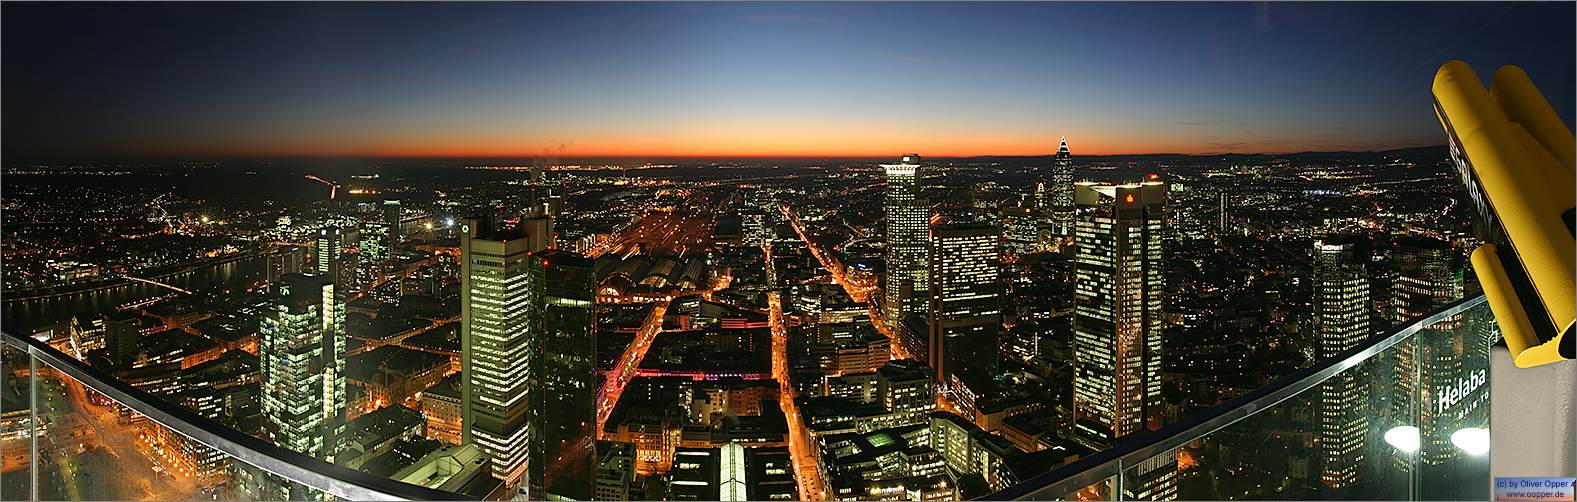 Panorama Frankfurt - Maintower - p051 - (c) by Oliver Opper